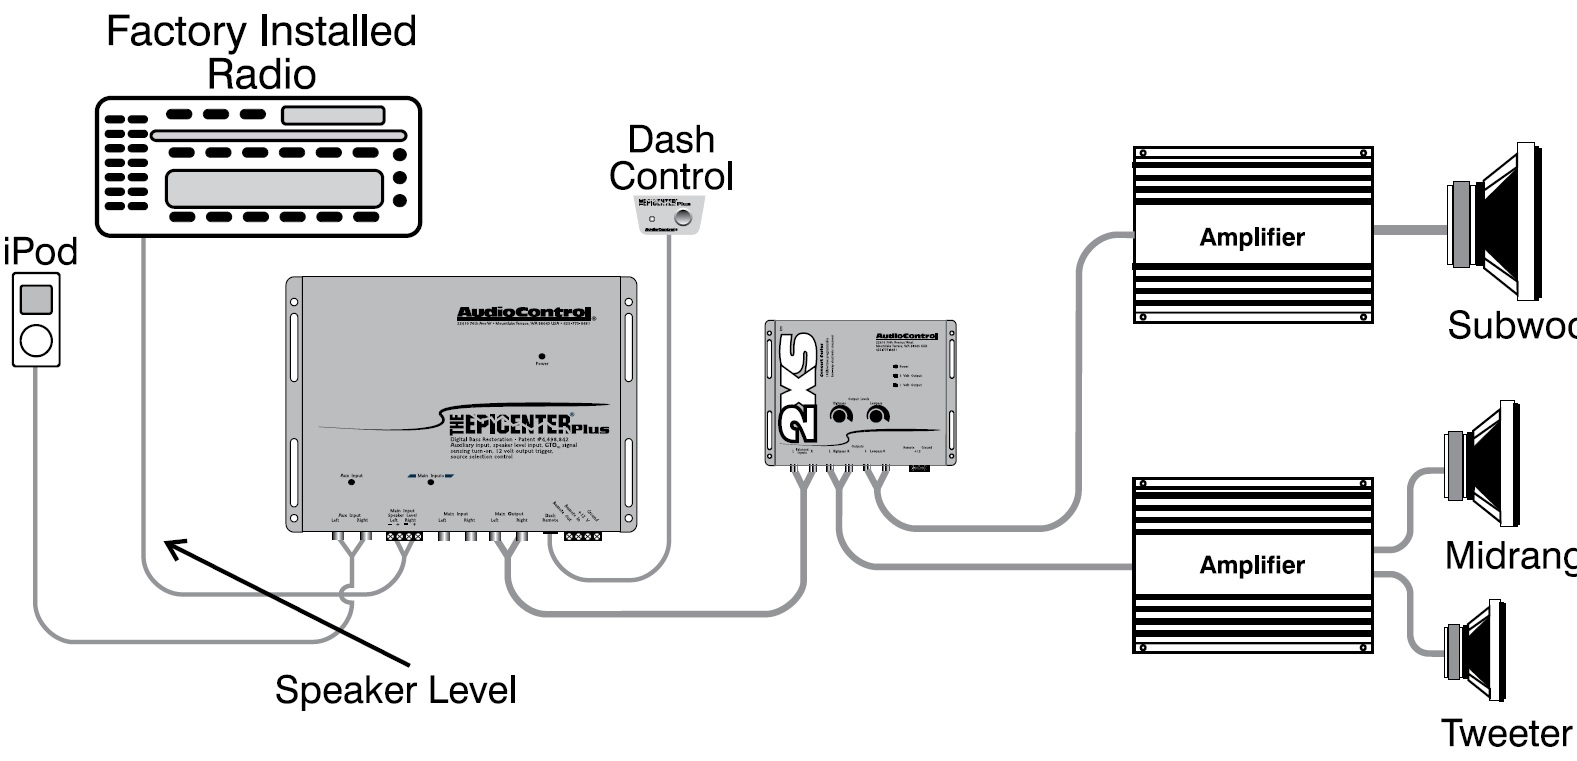 epicenterplus_simpleinstall car application diagrams audiocontrol simple auto wiring diagrams at gsmportal.co